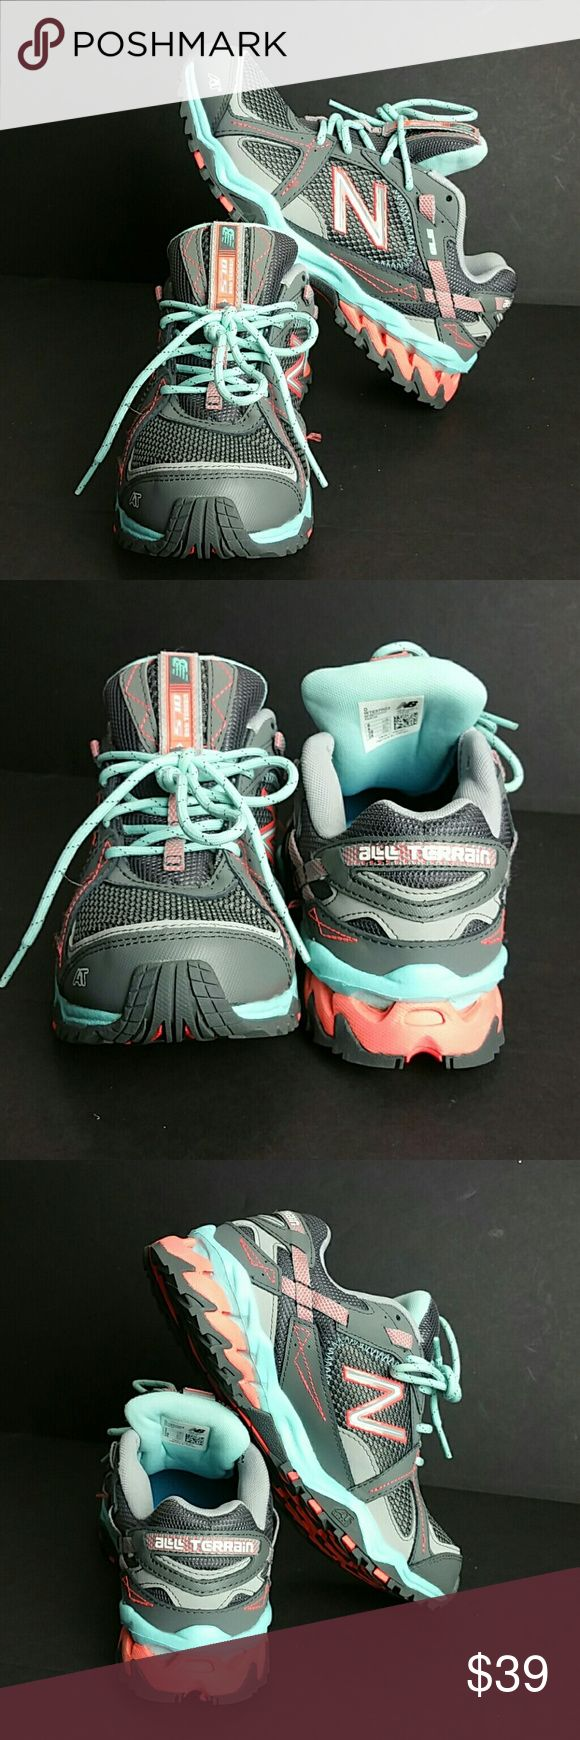 NEW BALANCE 570 ALL TERRAIN WOMEN SHOES VERY CLEAN INSIDE-OUT   SKE # UKPO New Balance Shoes Athletic Shoes